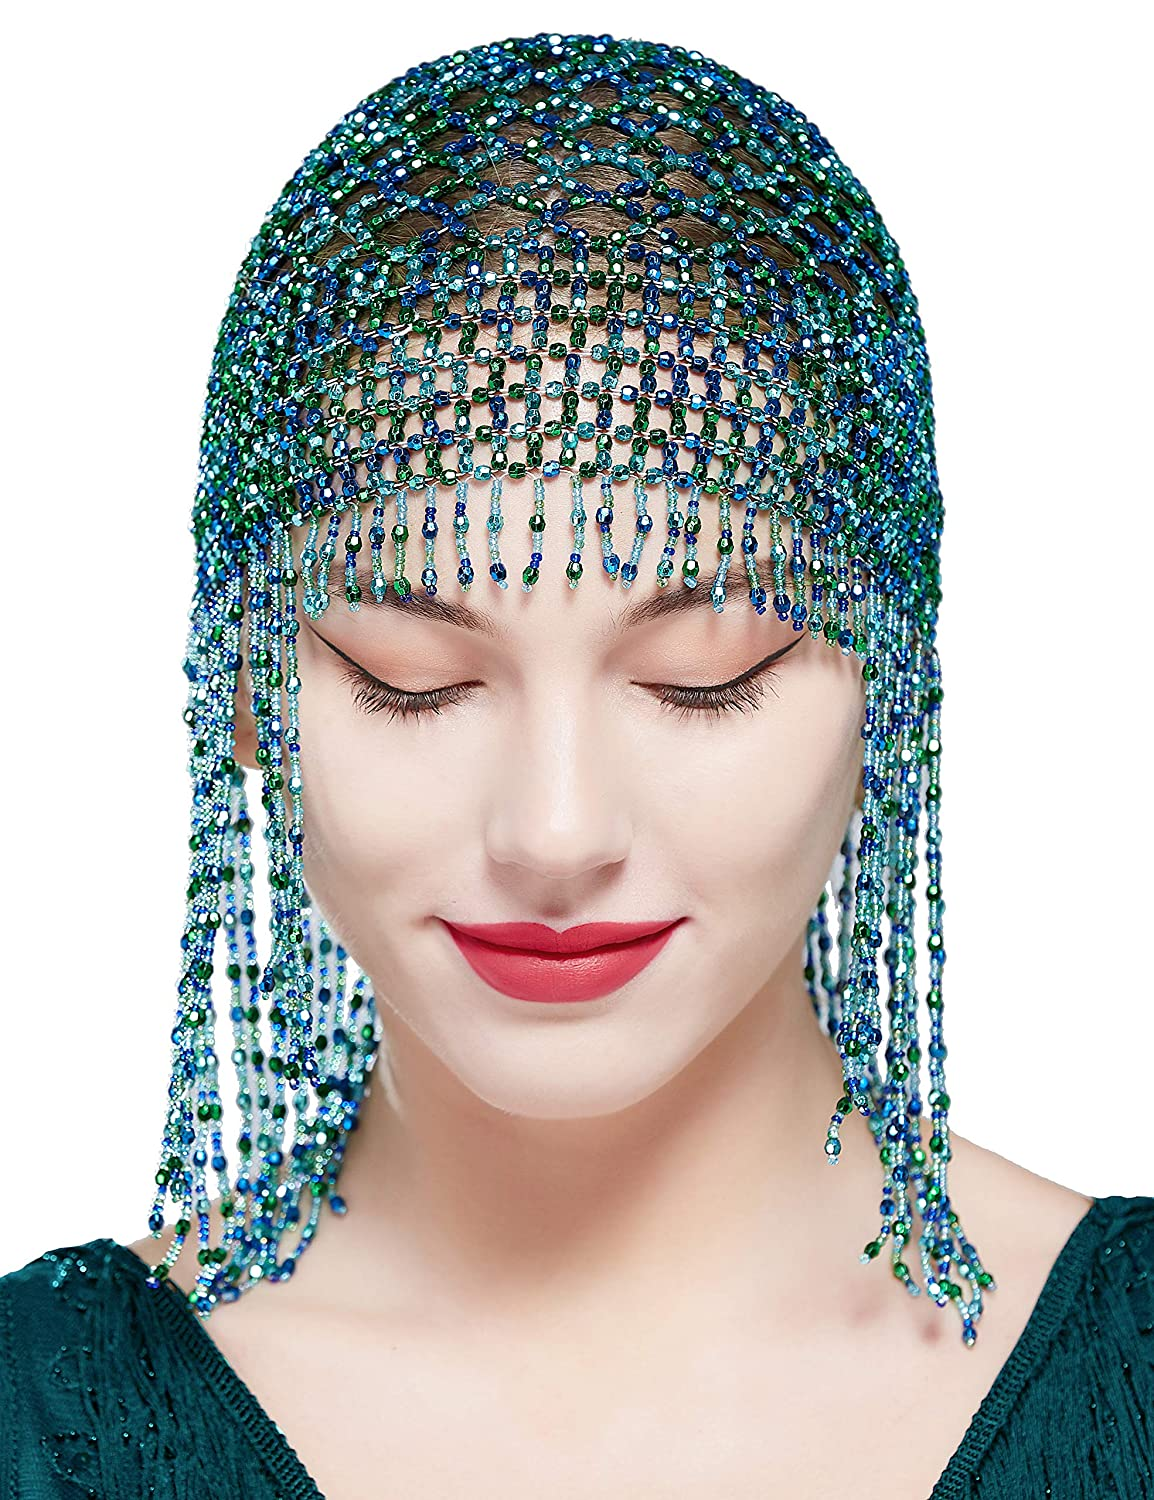 BABEYOND 1920s Beaded Cap Headpiece Roaring 20s Beaded Flapper Headpiece Belly Dance Cap Exotic Cleopatra Headpiece for Gatsby Themed Party (Blue and Green)